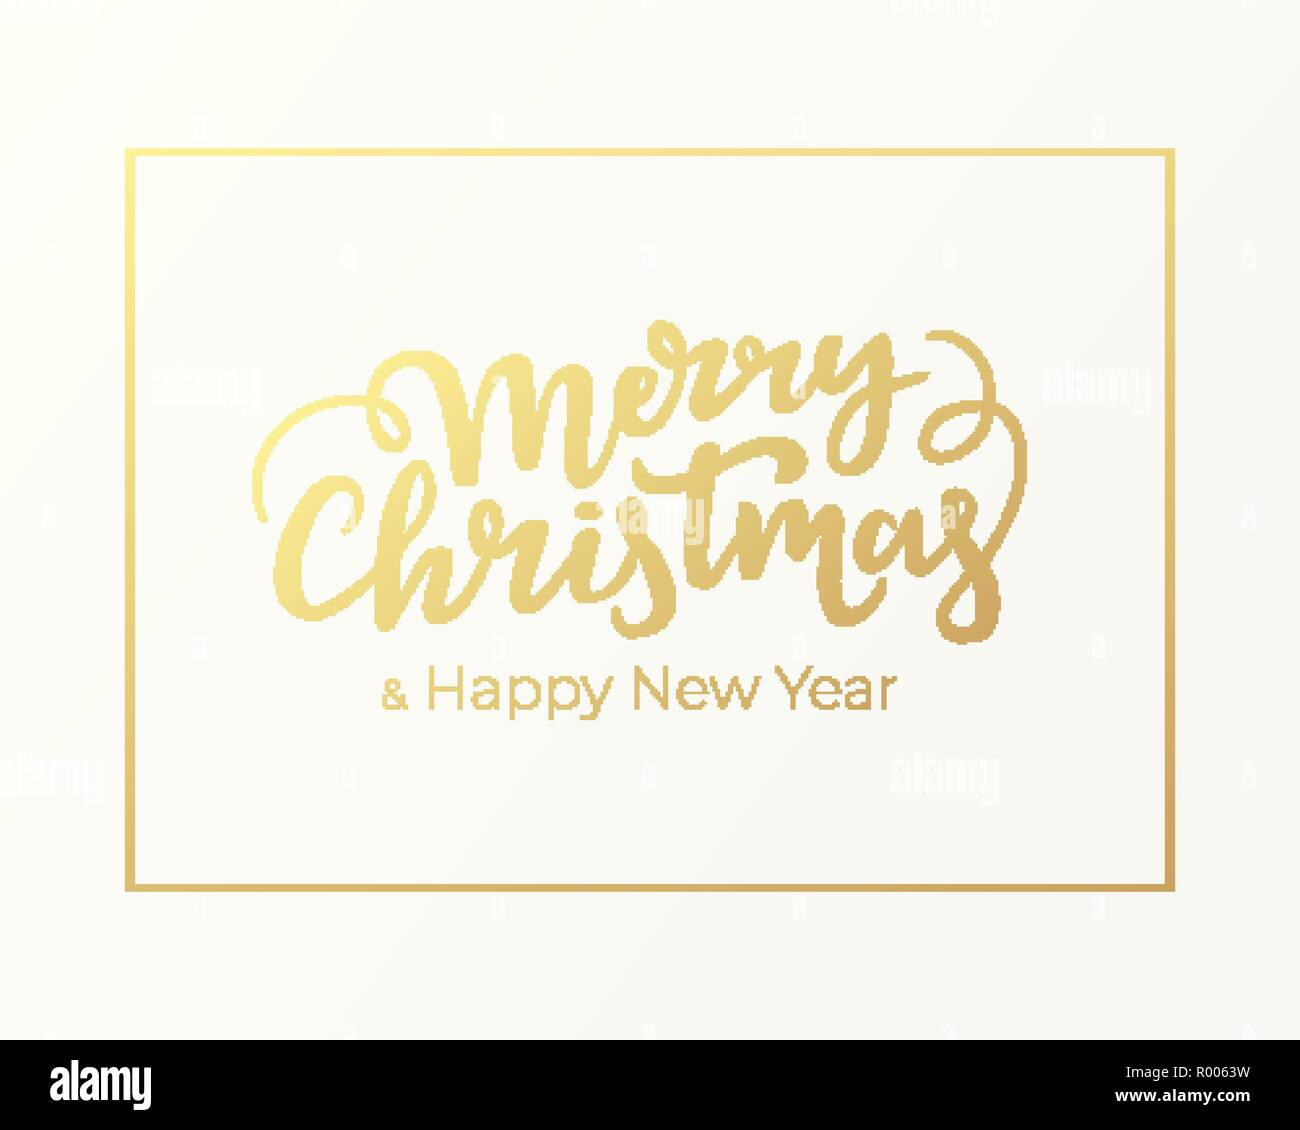 Typographical festive greeting postcard design for Christmas and New Year. Winter holidays card with golden frame and lettering on background of light - Stock Image